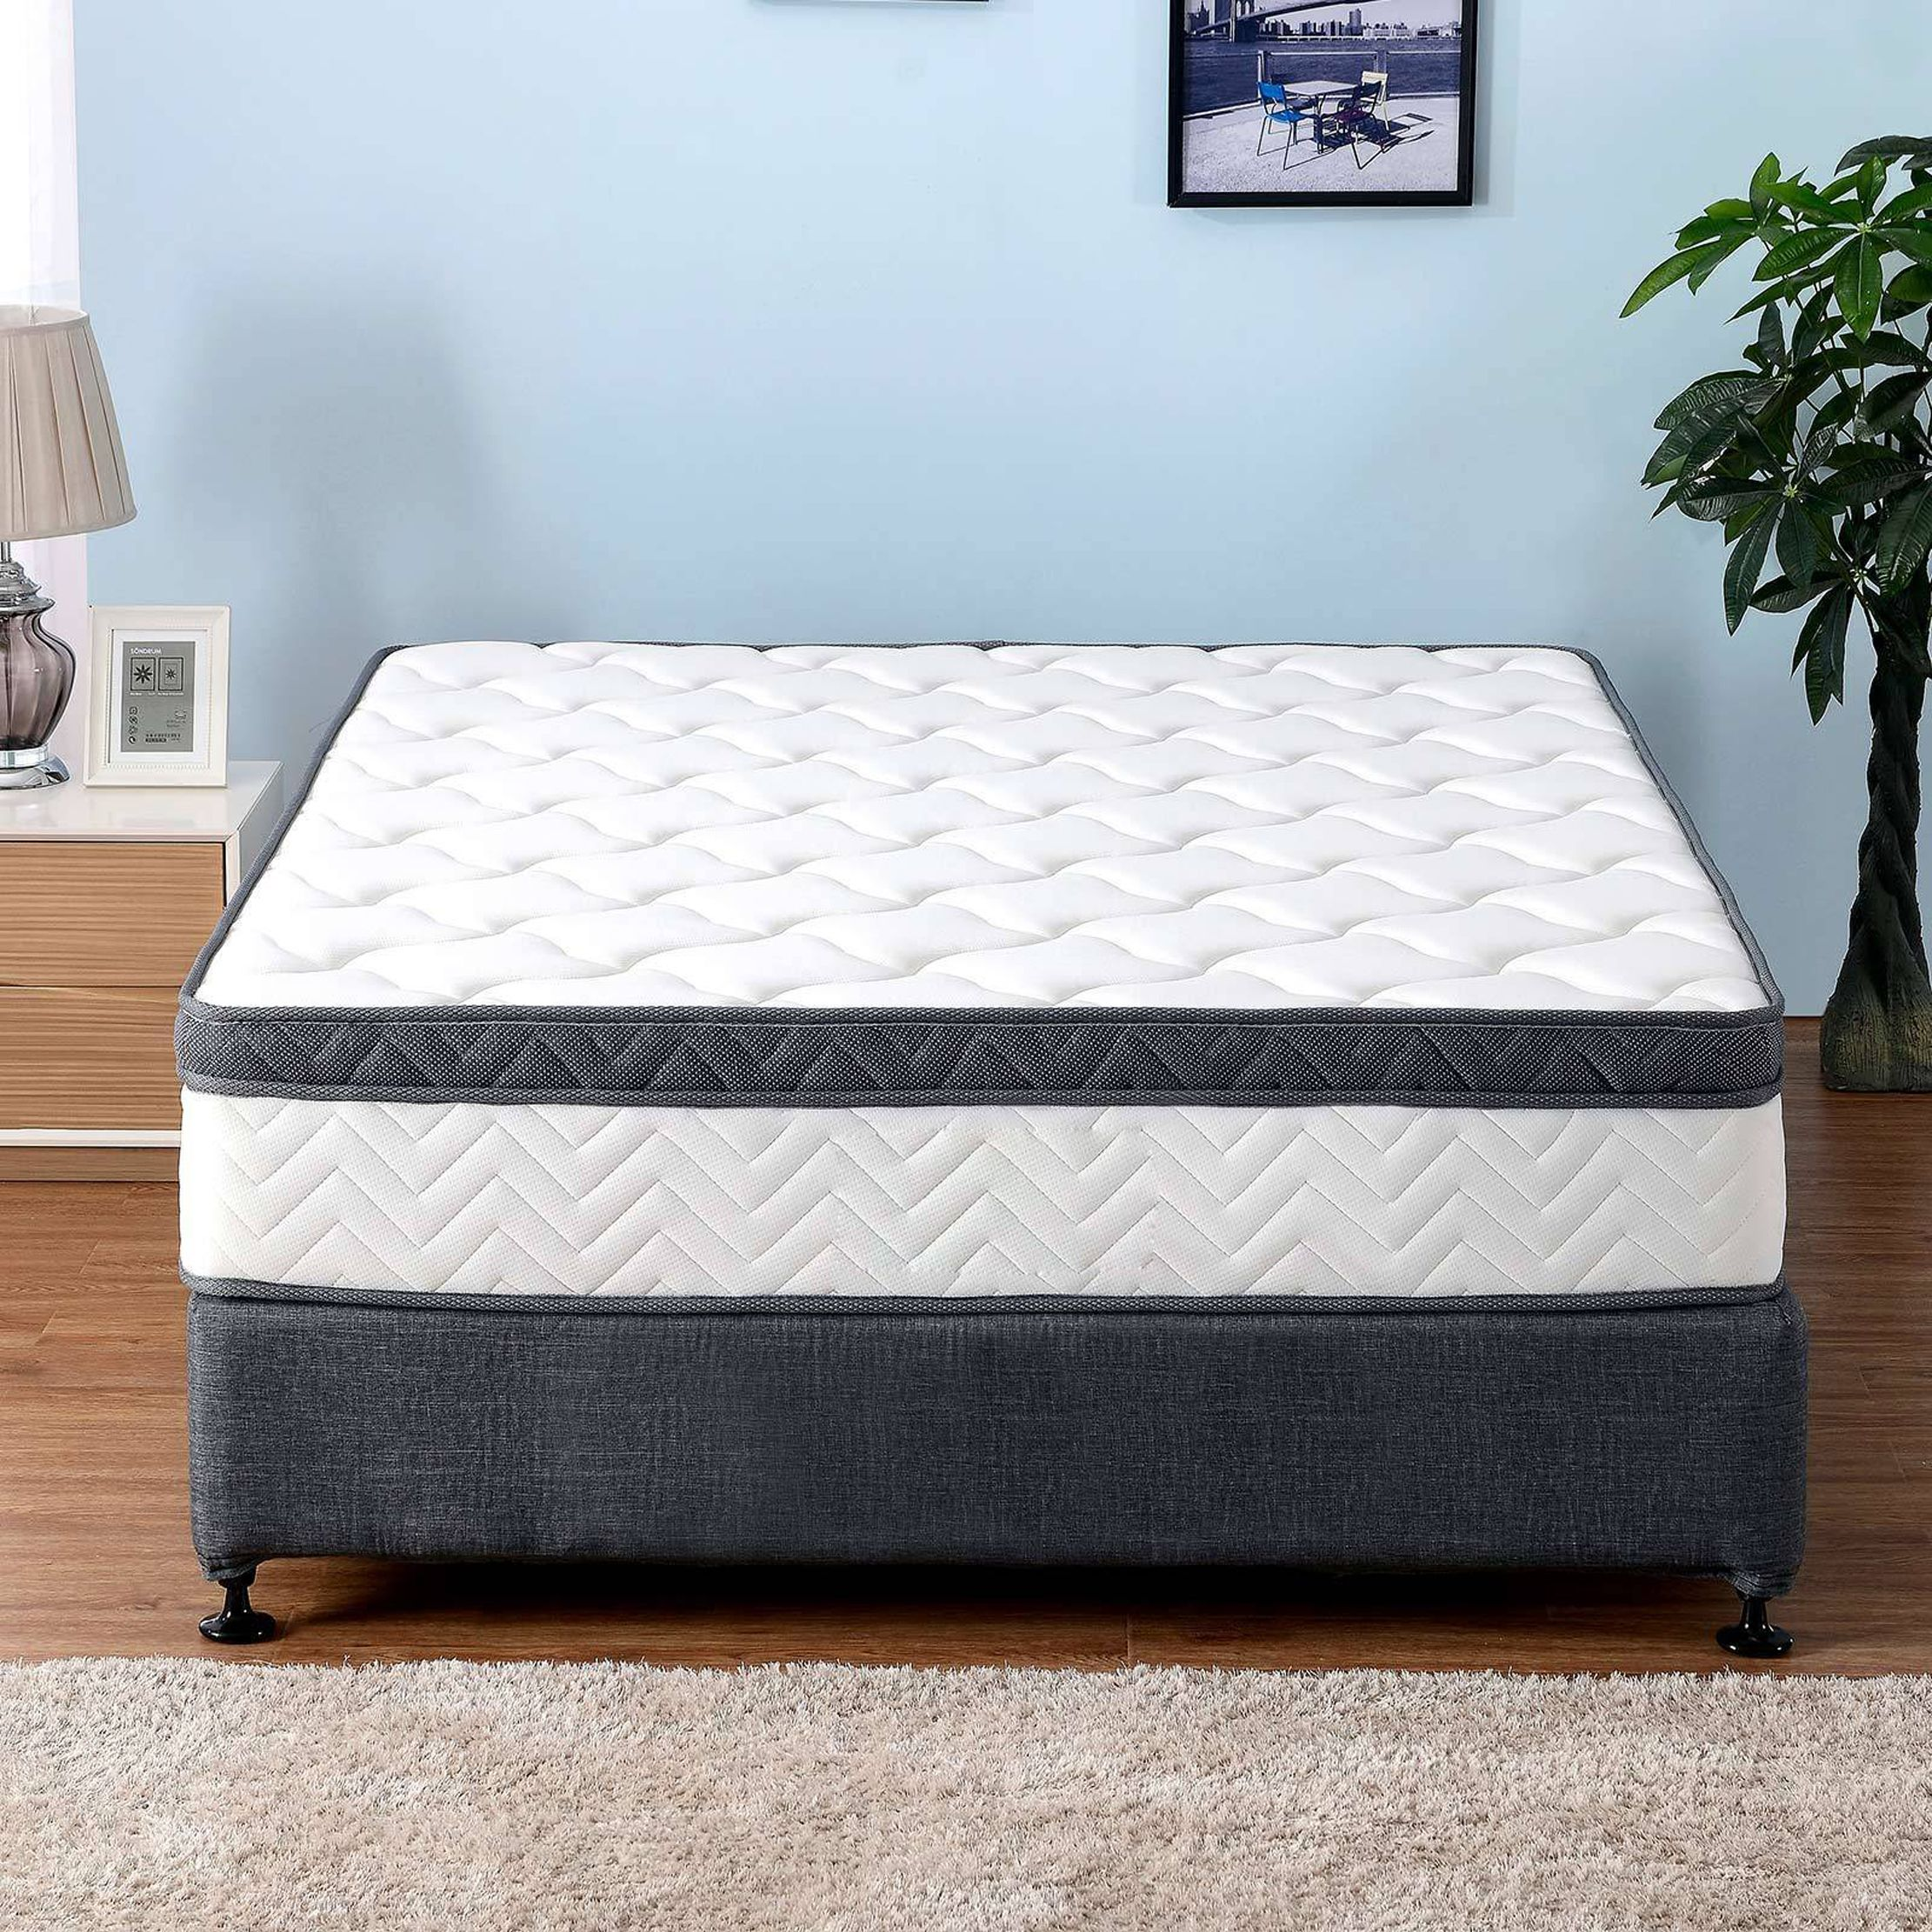 Premium Memory Foam Mattress Euro Top 29cm Thickness 7